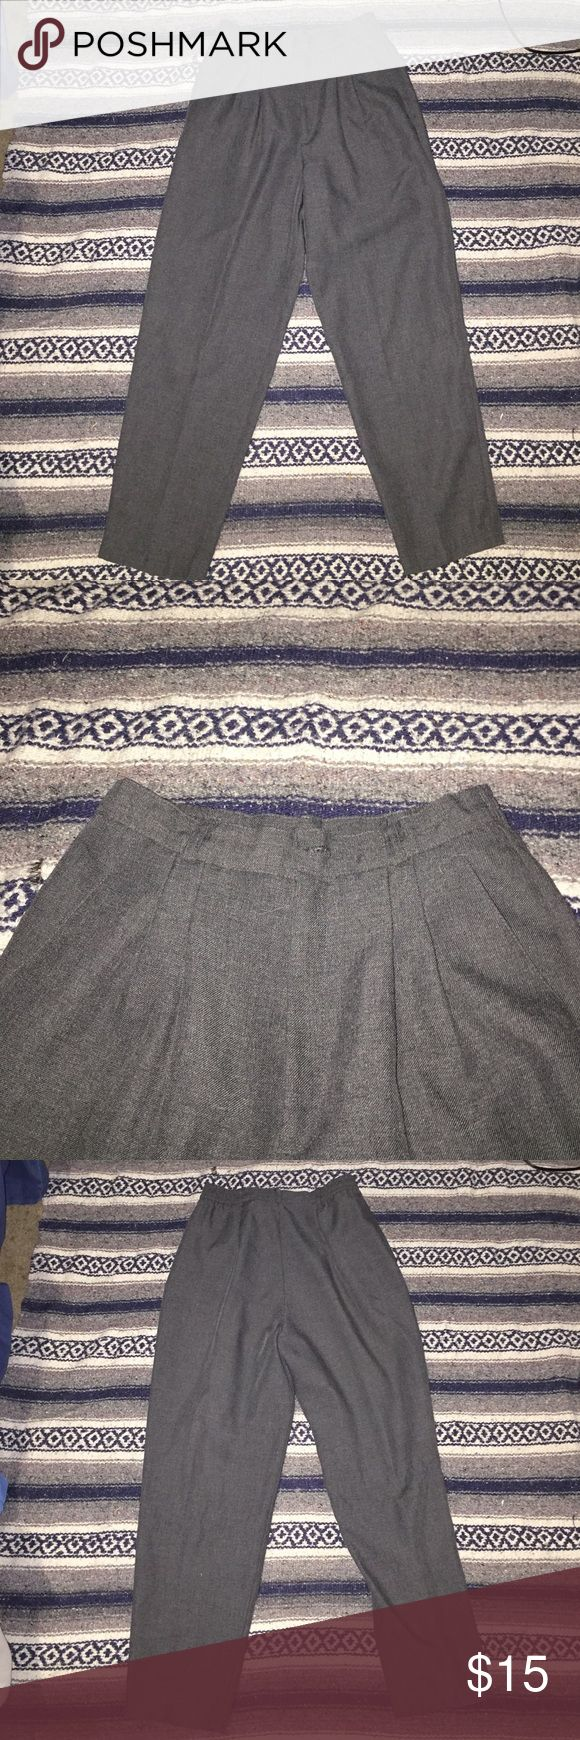 Women's business pants Women's grey business pants petite . In great condition with a sinched waist . briggs Pants Trousers